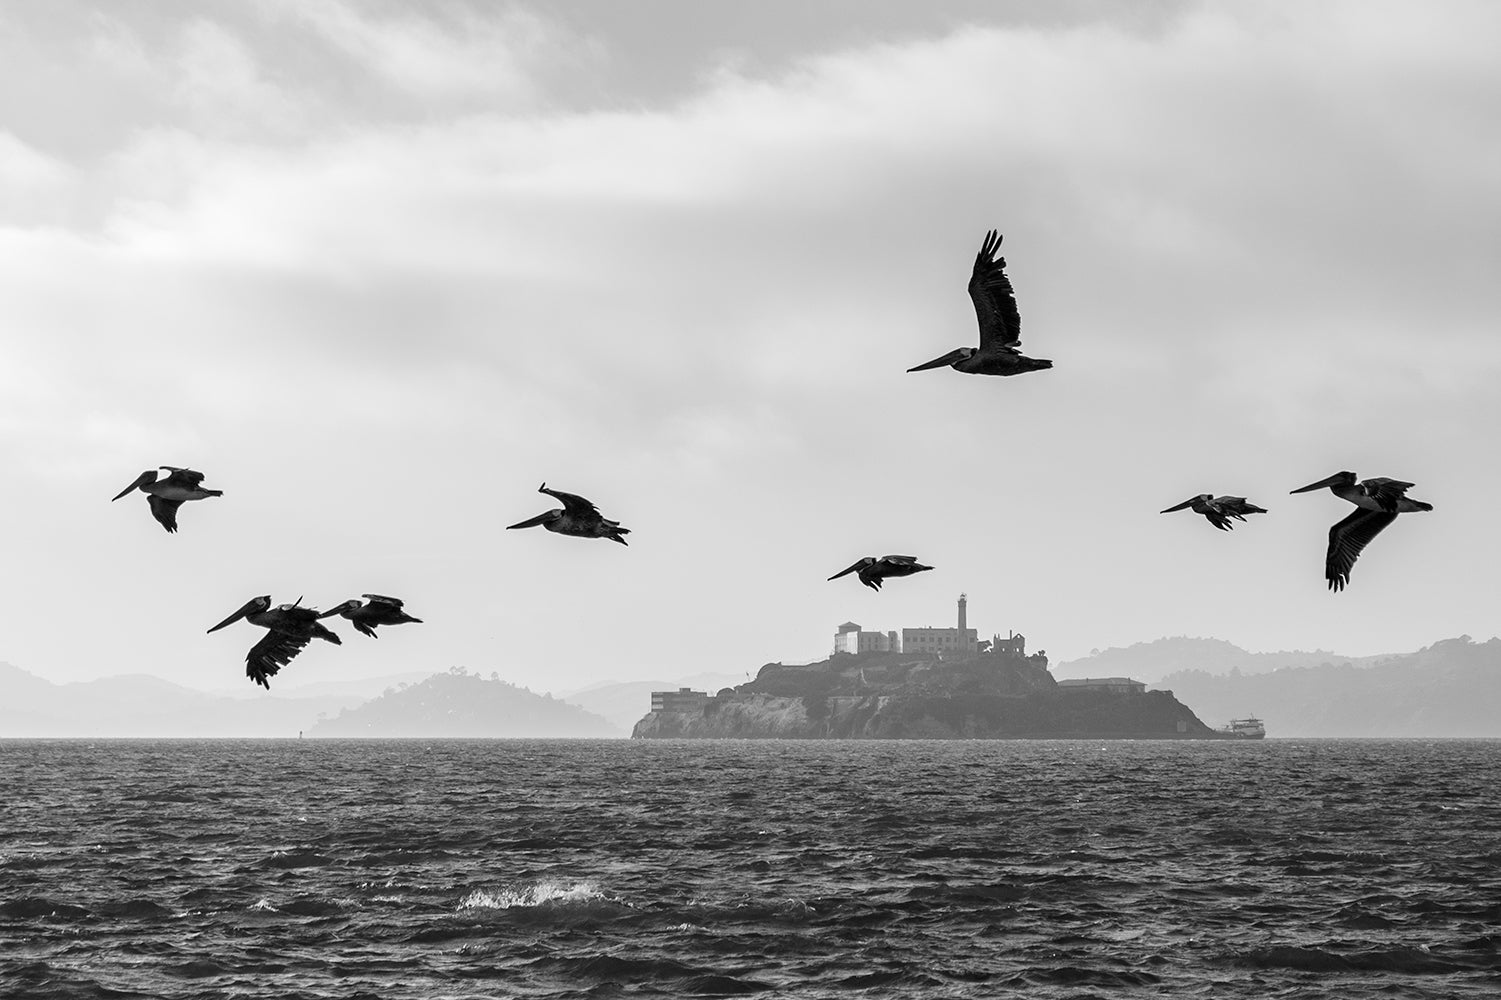 A black and white image of Pelicans flying with Alcatraz highlighted in the background and across the water.